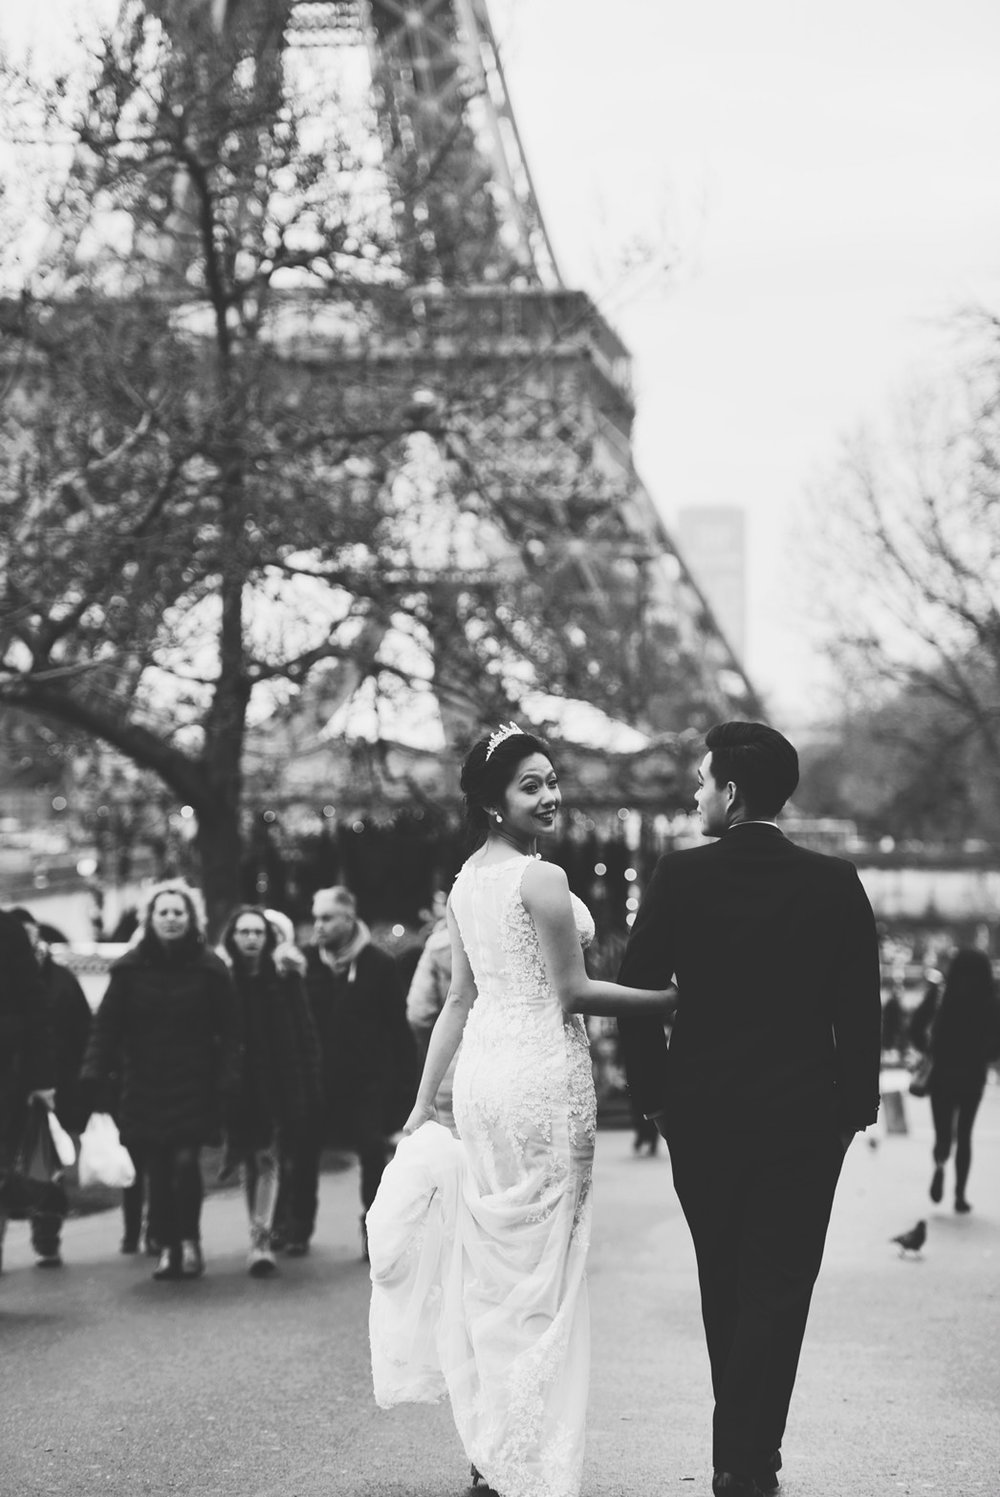 PUREFOTO_海外婚紗攝影Oversea_Prewedding_Paris Prewedding